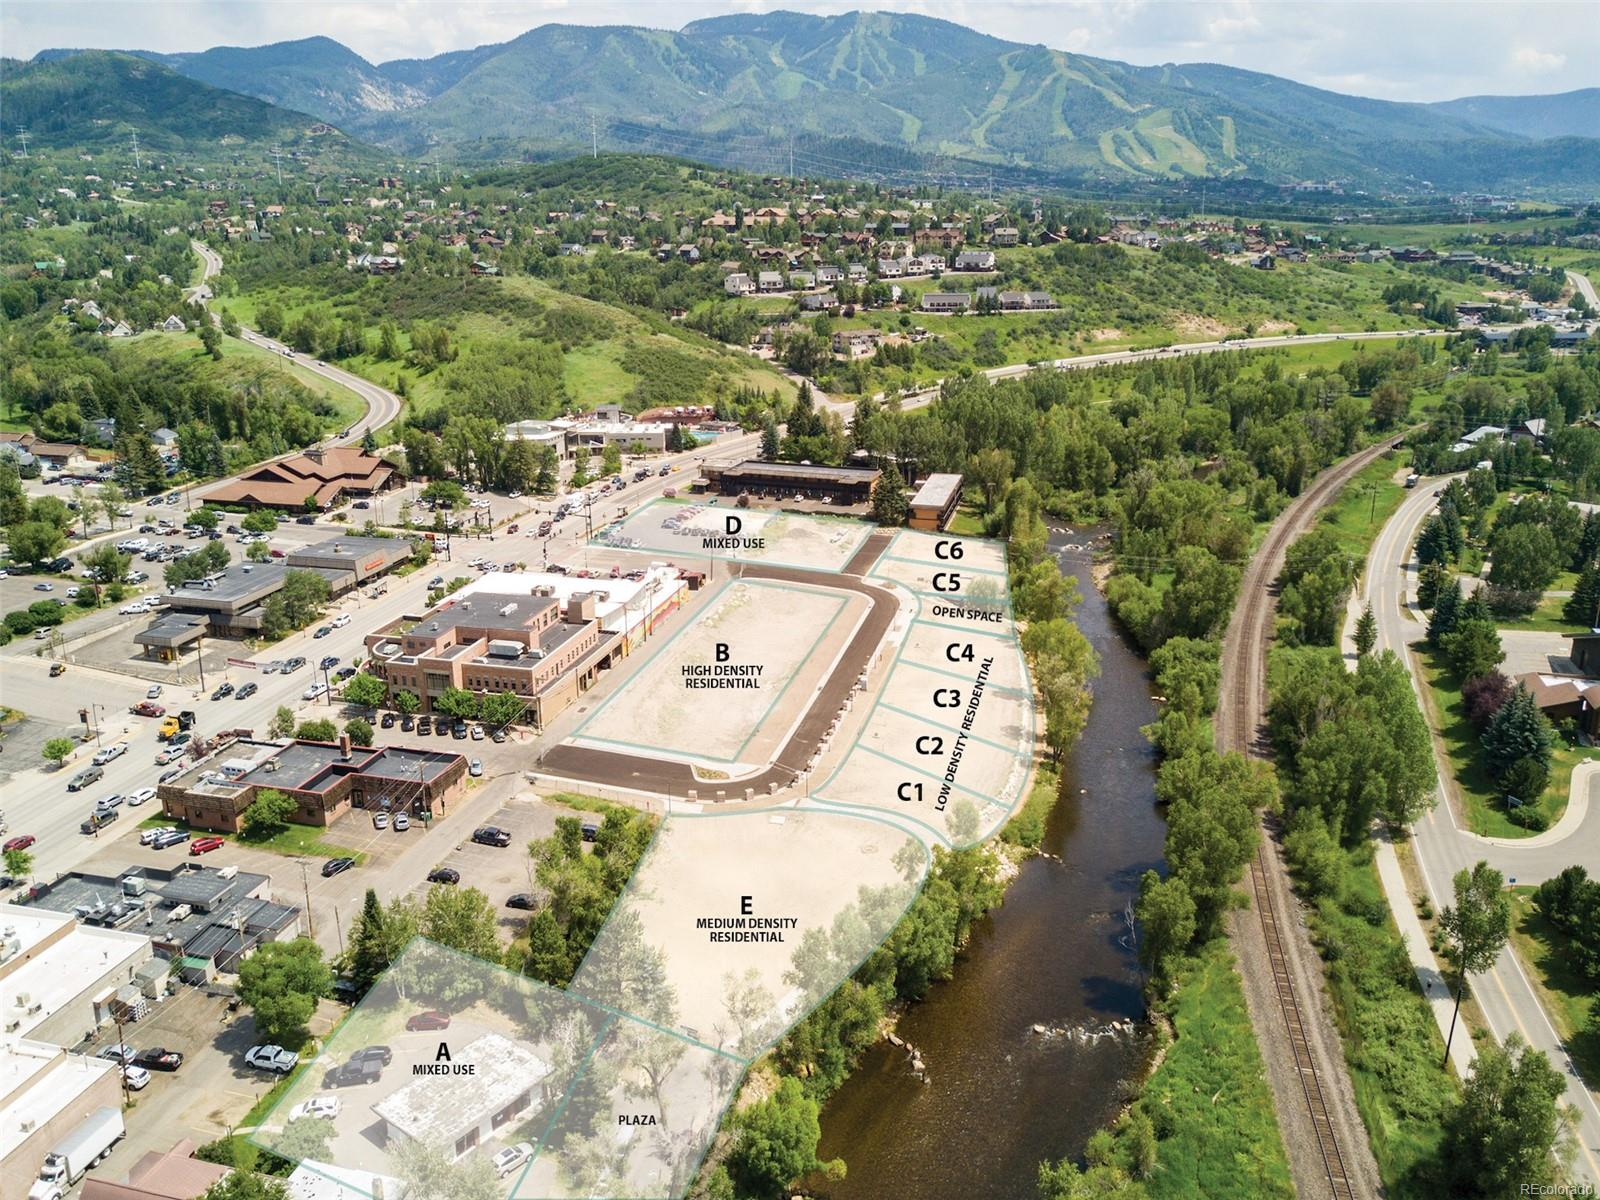 446 Yampa St- Riverview Parcel A, Steamboat Springs, CO 80487 - Steamboat Springs, CO real estate listing